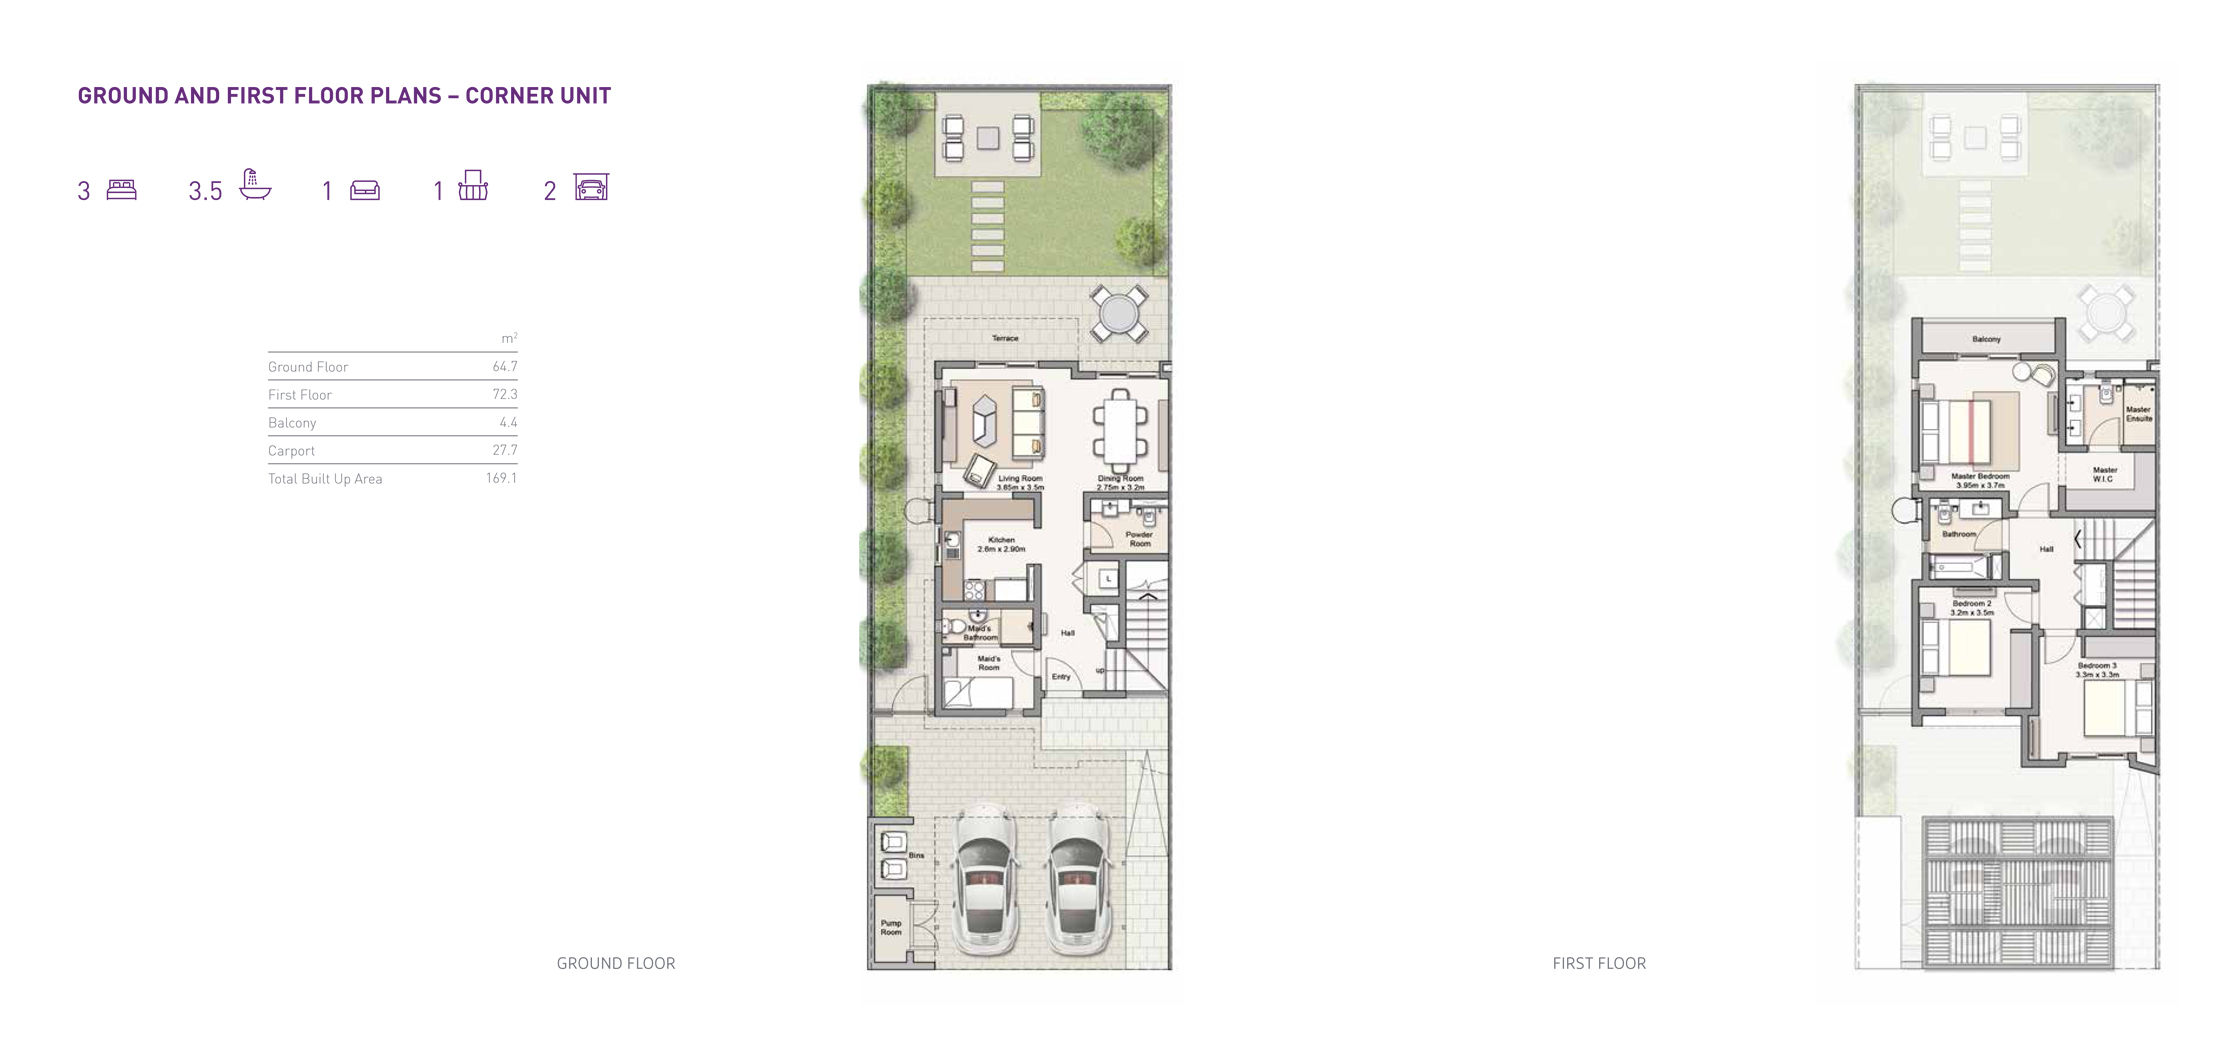 3 Bedroom Ground and First Floor Plans with 169 Sq Mtr